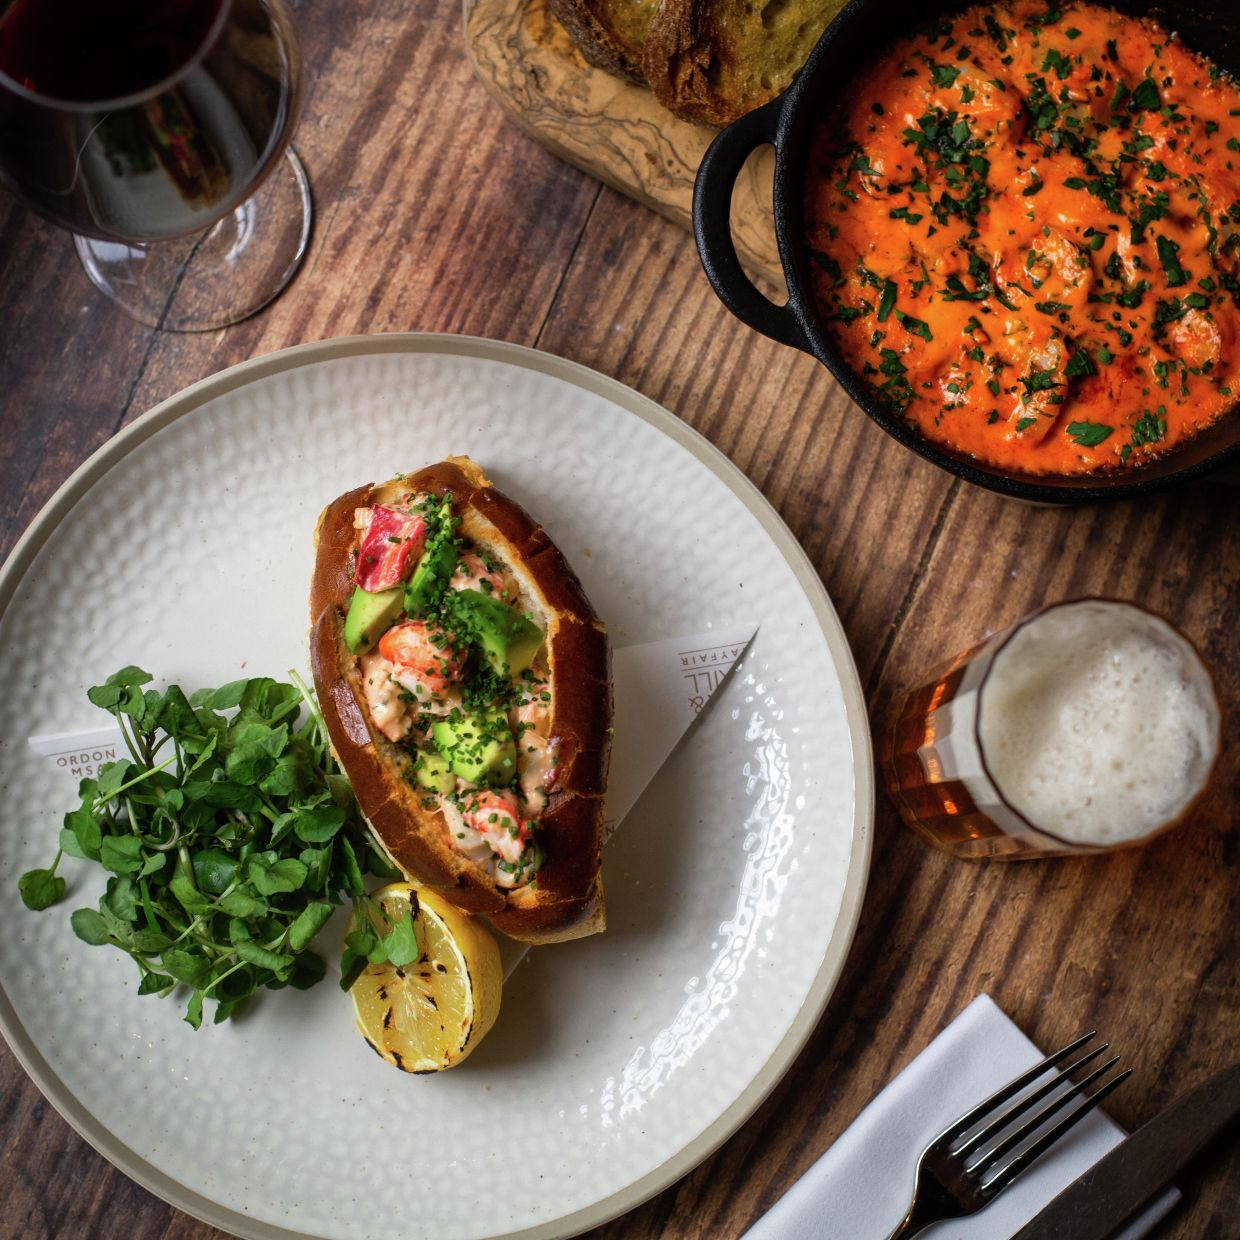 Enjoy a Lobster Roll (pictured) along with rendang short ribs or Crab and Corn Laksa at Ramsay's upcoming restaurant in Malaysia. — Gordon Ramsay Restaurants